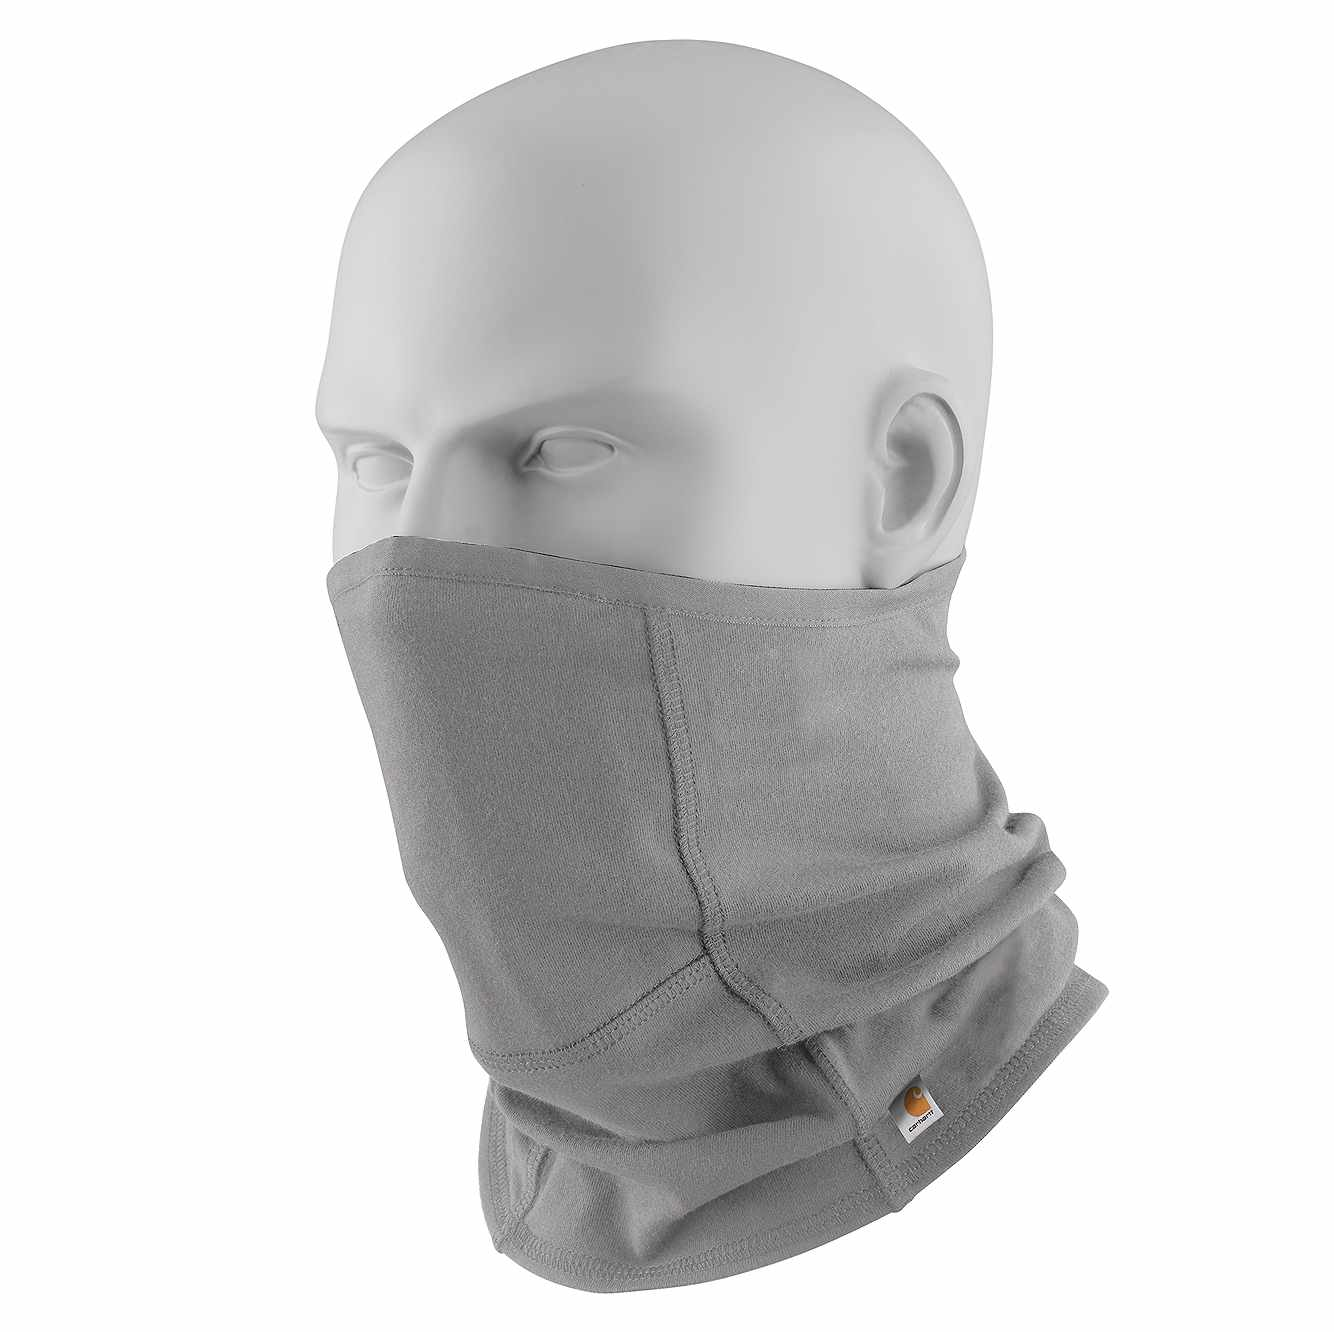 Picture of CARHARTT COTTON GAITER WITH FILTER-POCKET in Asphalt